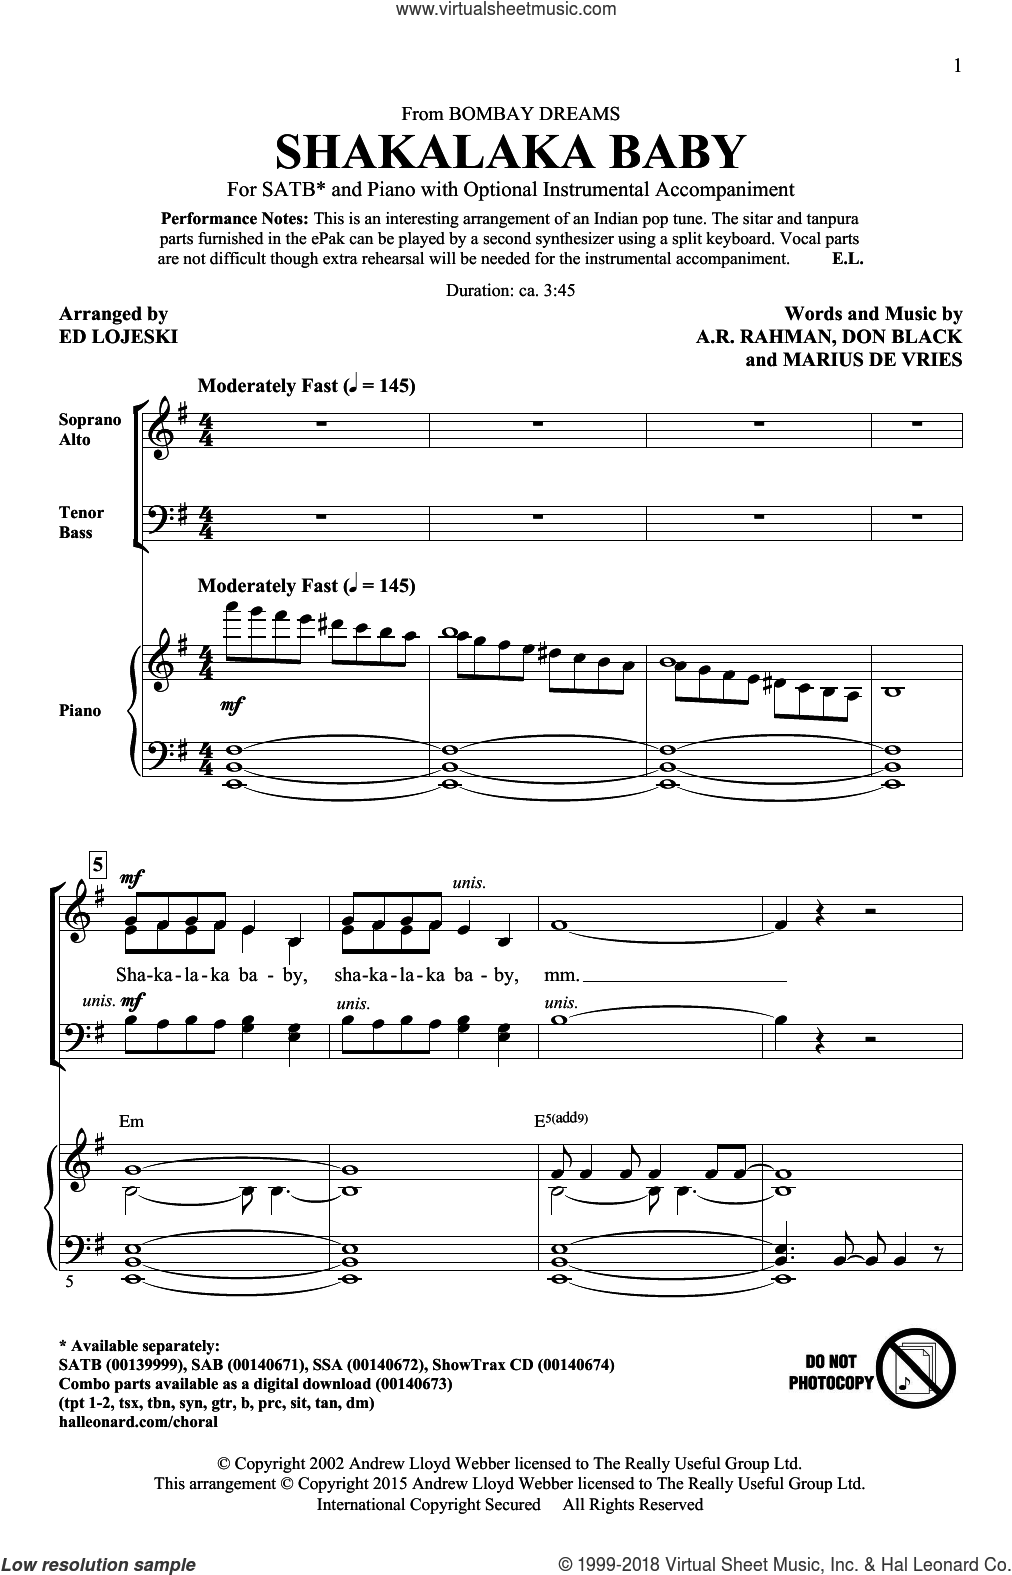 Shakalaka Baby (from Bombay Dreams) sheet music for choir (SATB) by Don Black, Ed Lojeski, A.R. Rahman and Marius De Vries, intermediate choir (SATB). Score Image Preview.